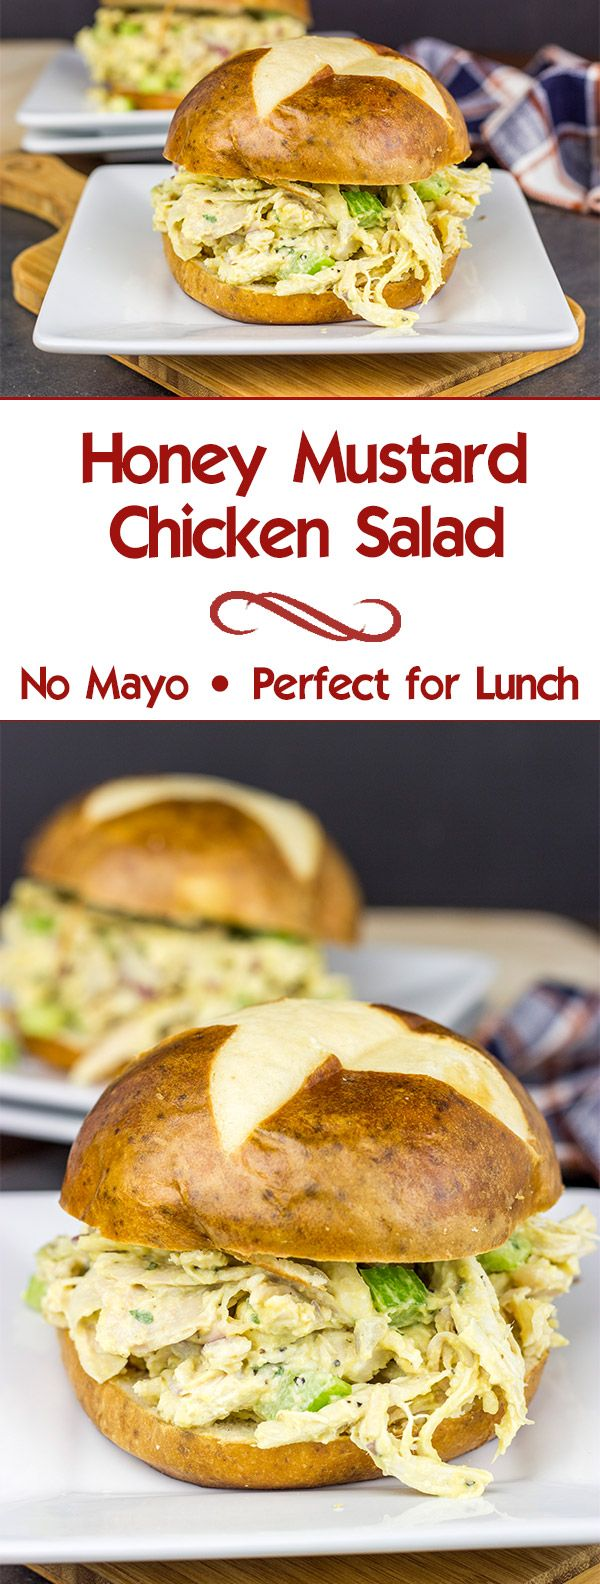 Mix up weekday lunches with this tasty Honey Mustard Chicken Salad!